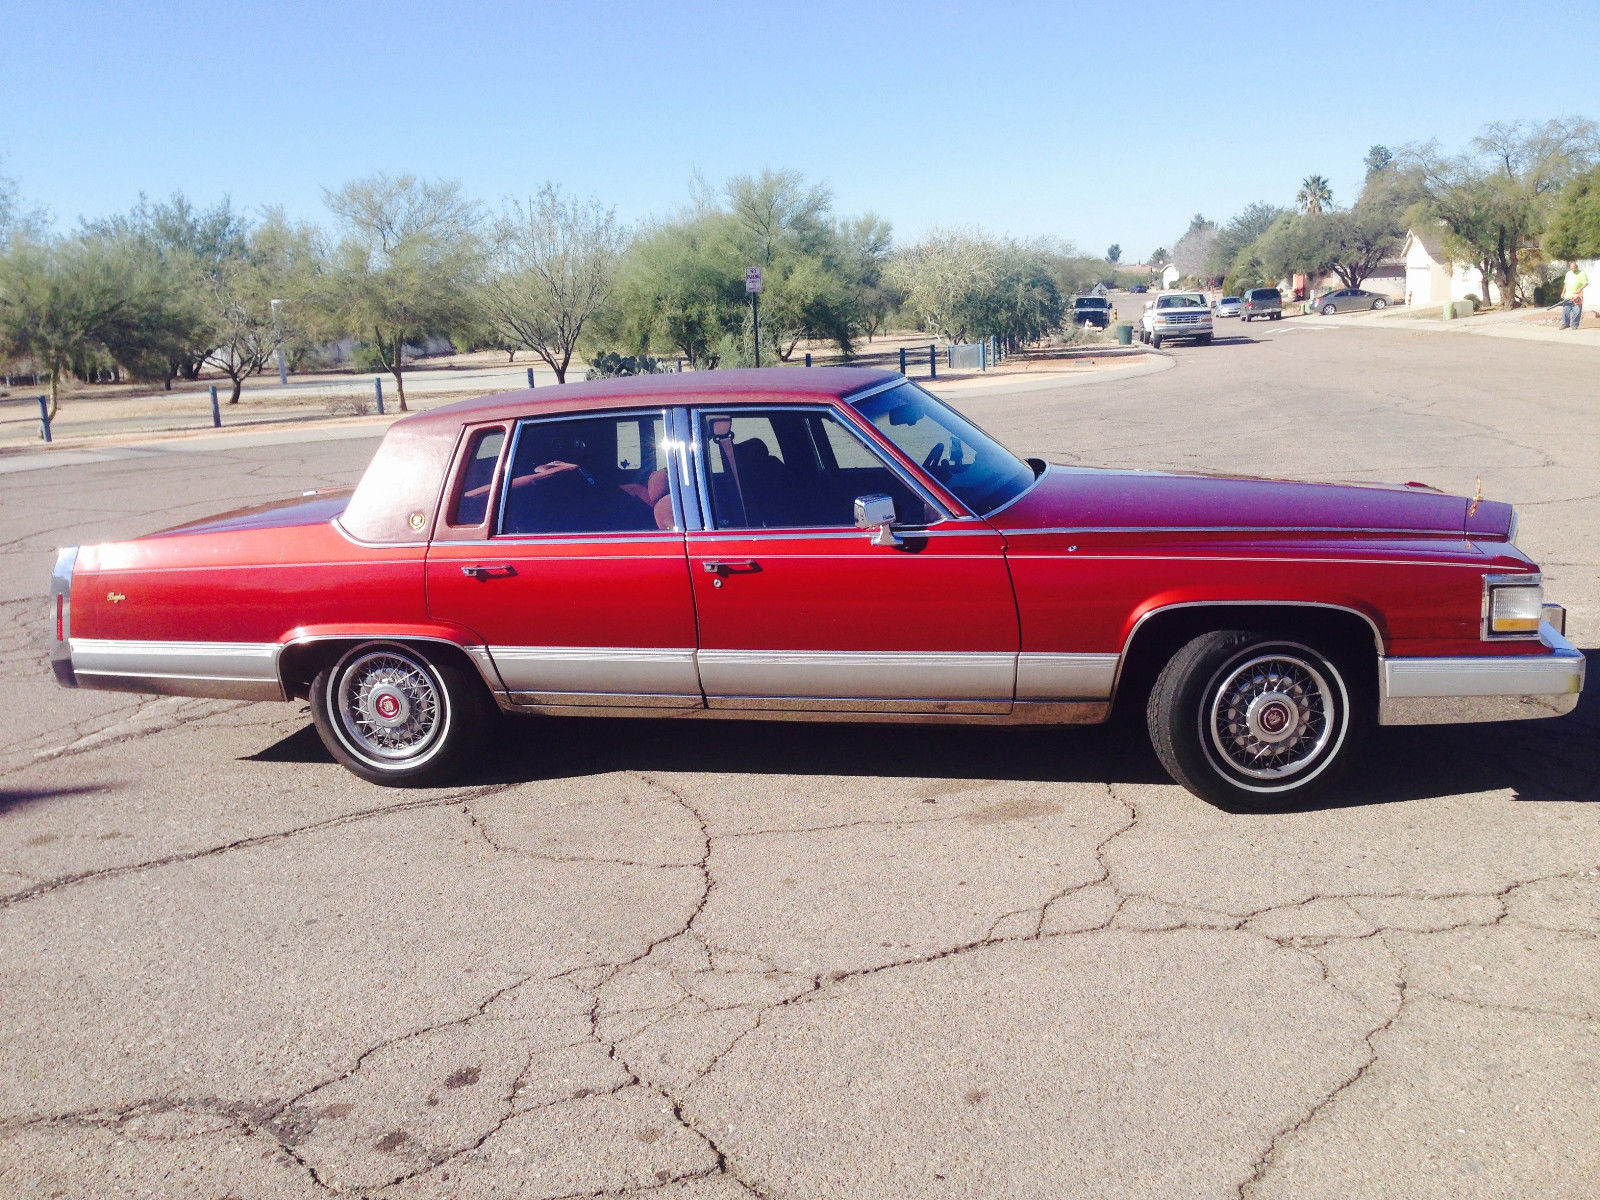 1992 Cadillac Brougham 5.0 With 77,500 Miles. Exterior And